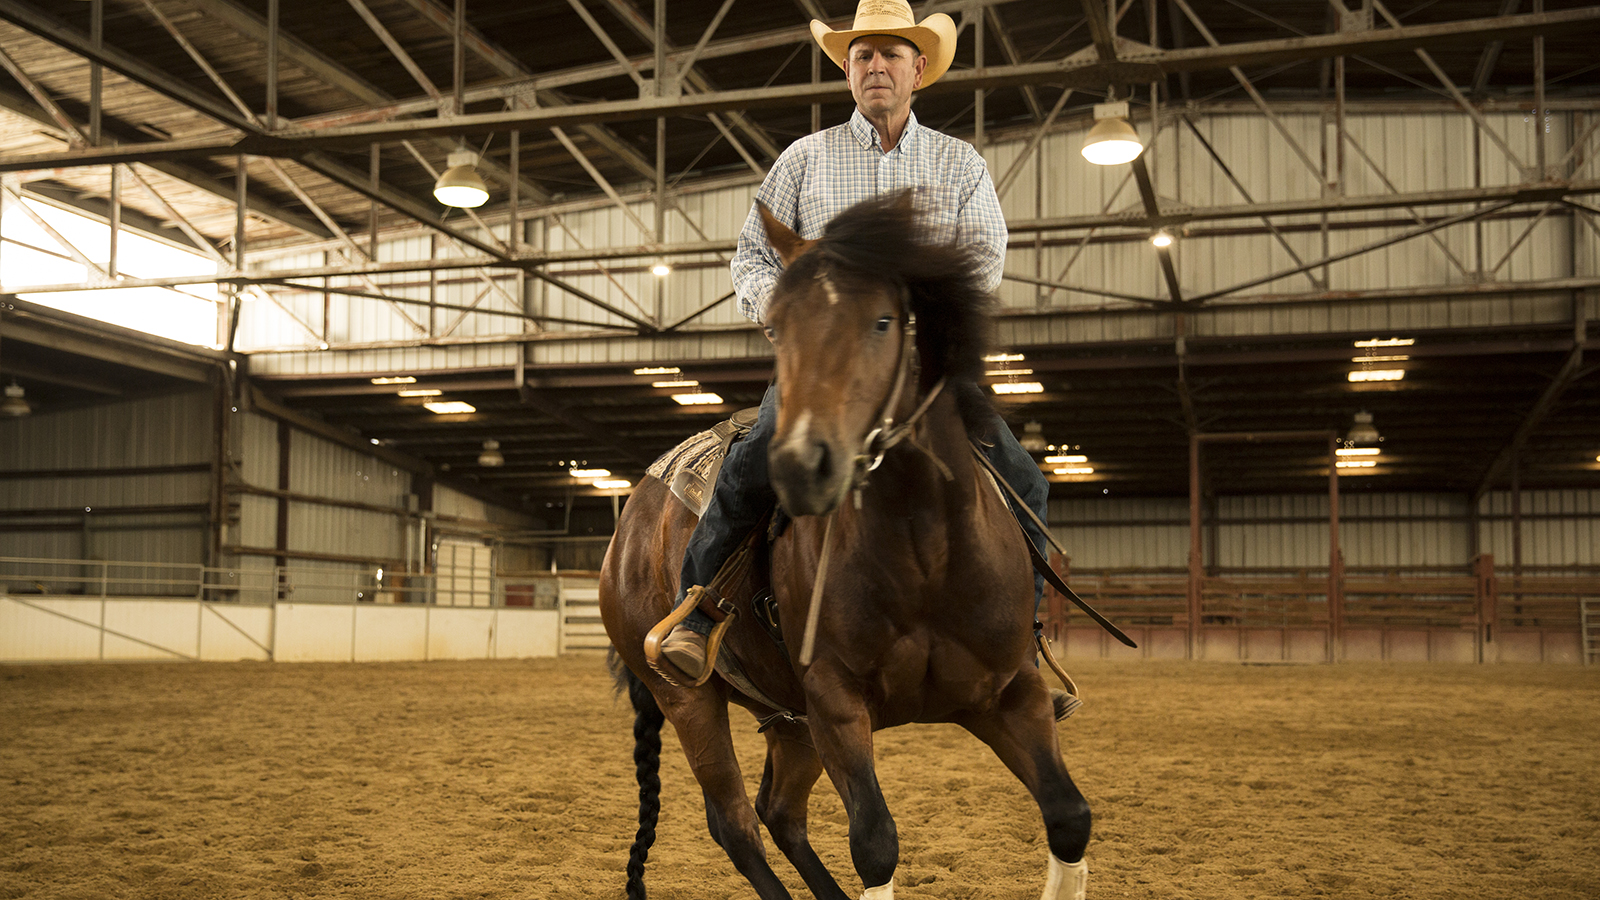 One of Jon Roeser's favorite bits is an unmarked snaffle.